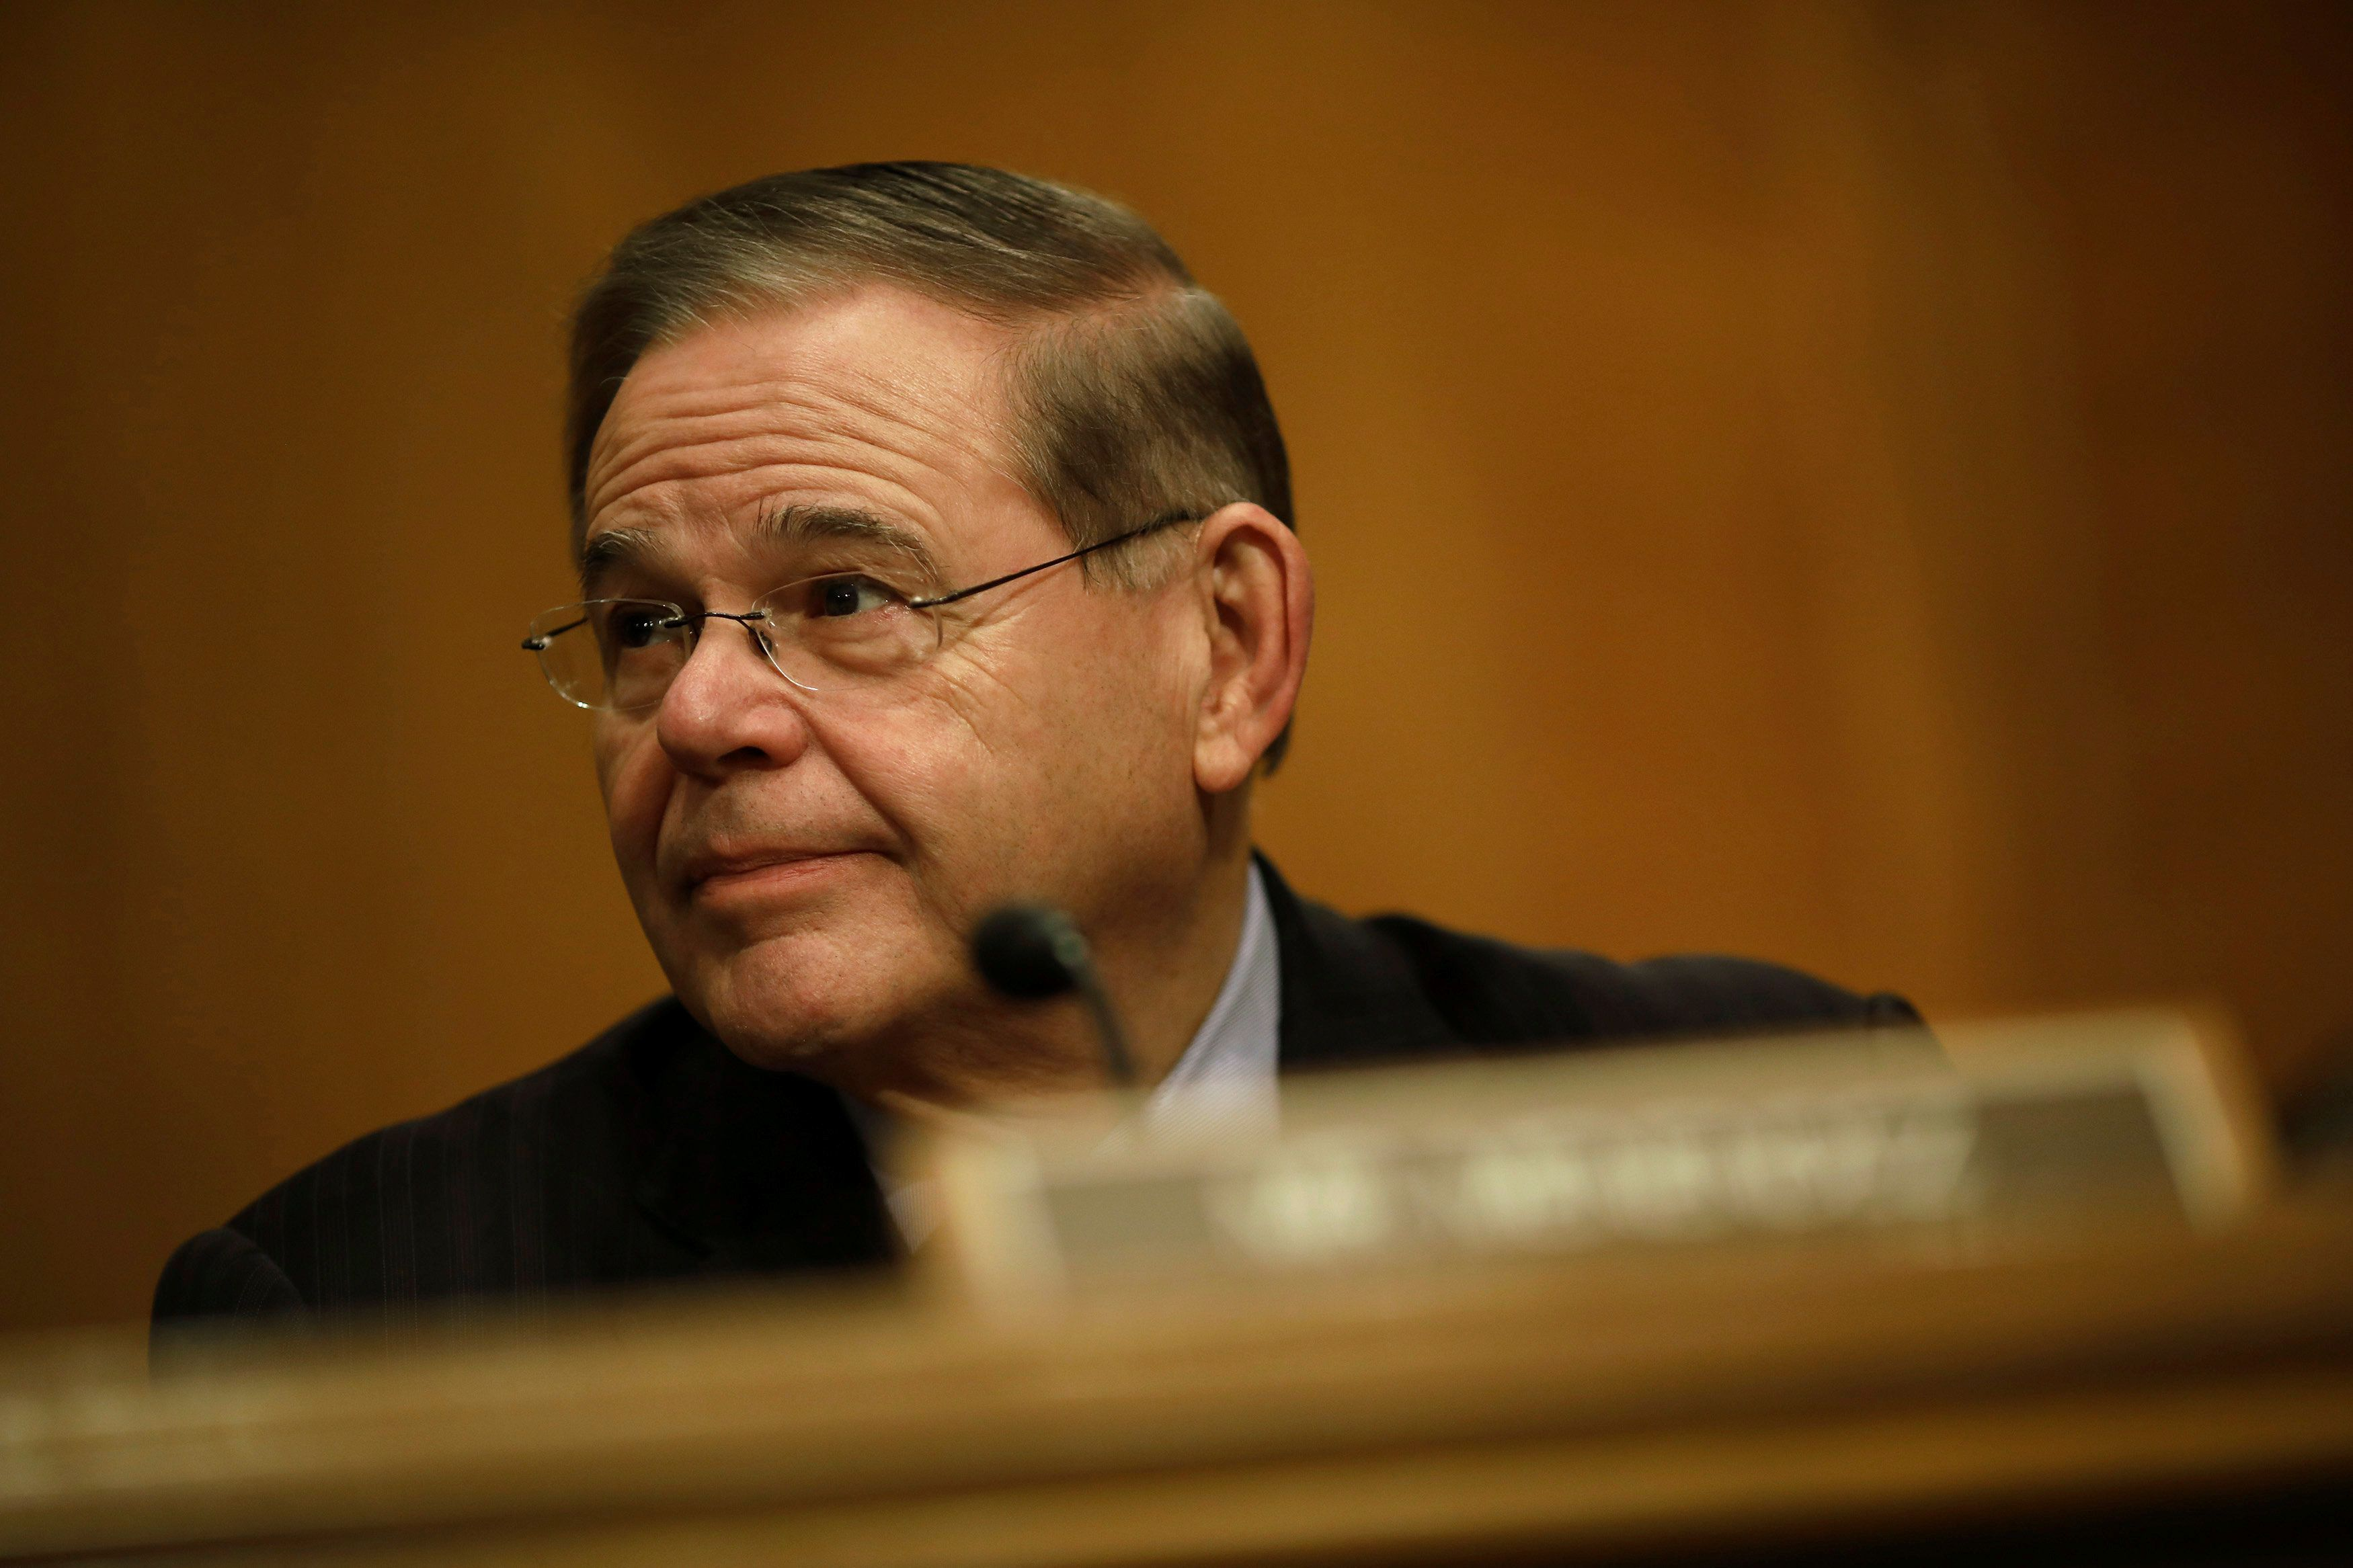 Democratic Sen. Bob Menendez's recent corruption trial has dogged his bid for re-election in bright blue New Jersey.